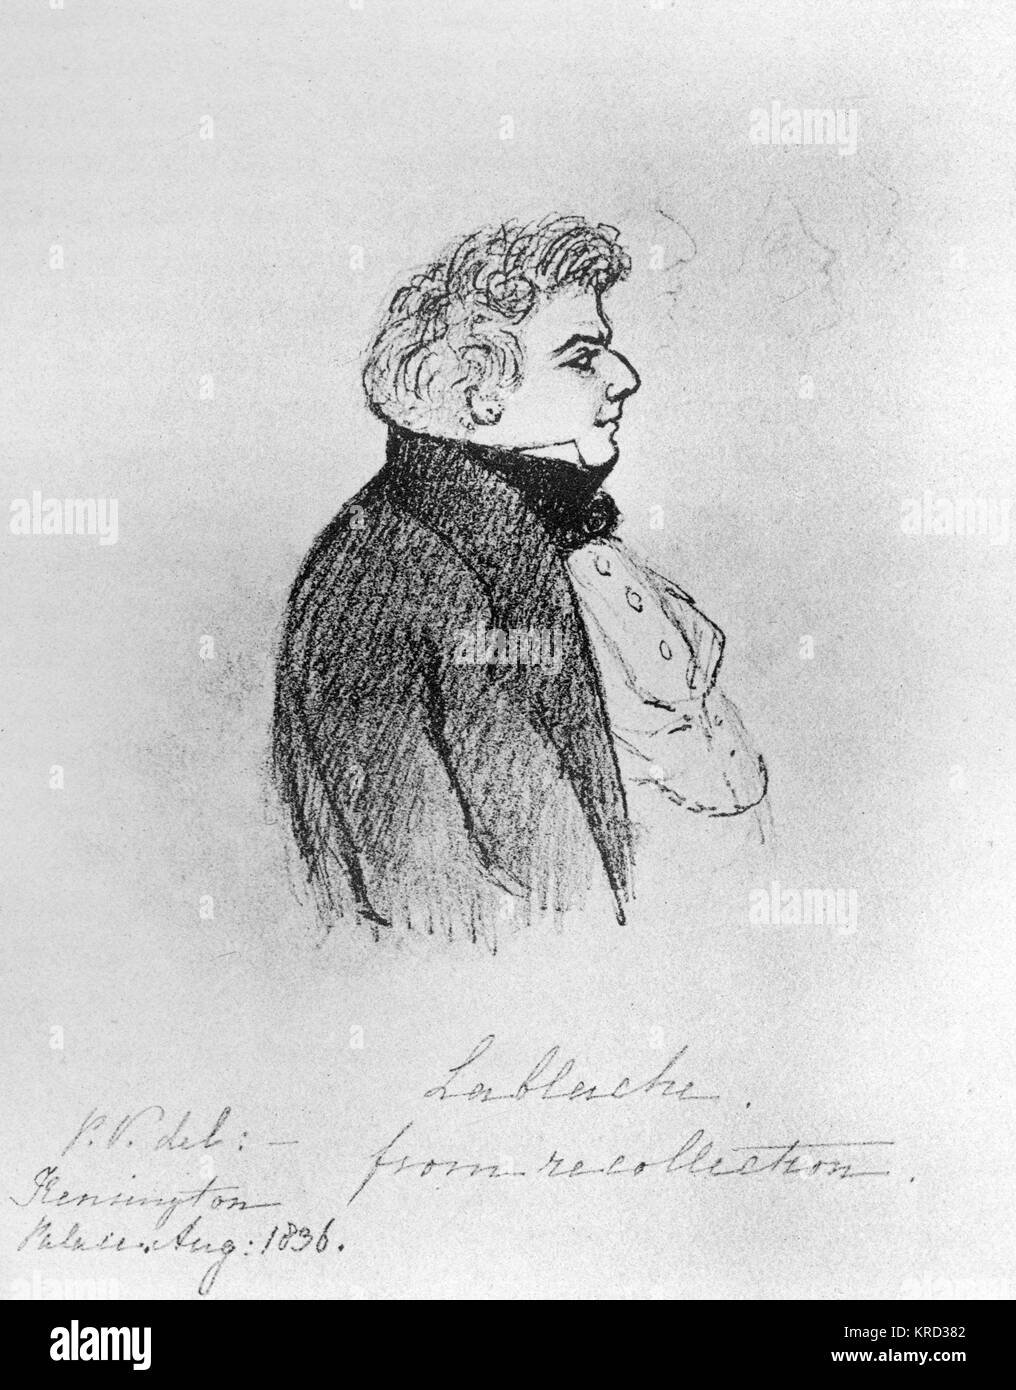 Luigi Lablache (1794-1858), Italian bass opera singer sketched from recollection by Princess Victoria in 1836.  - Stock Image